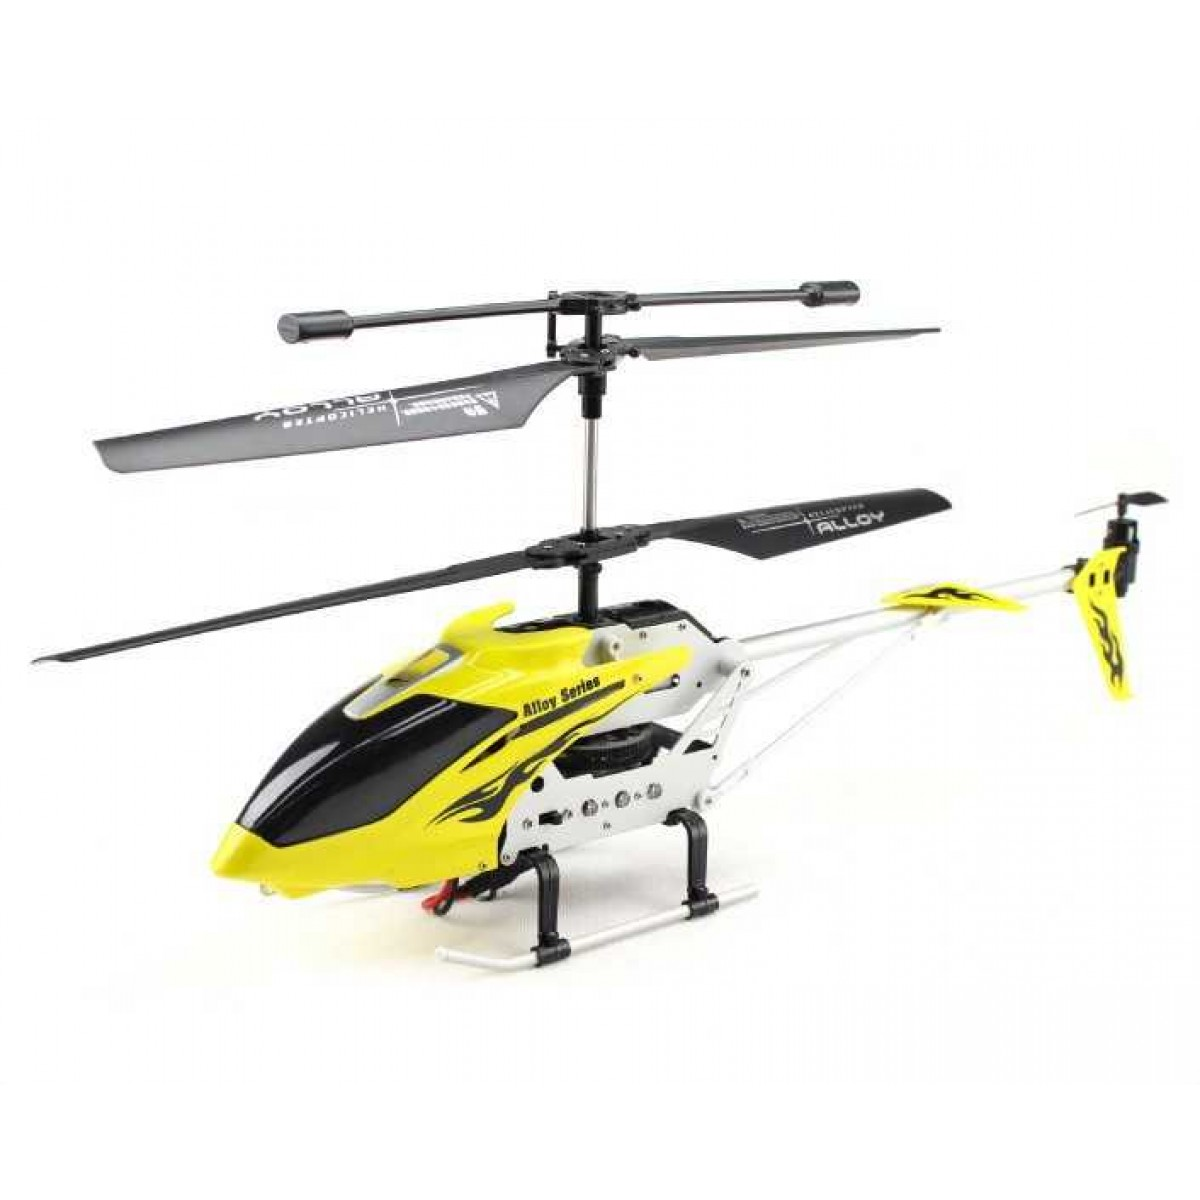 remote control airplanes for sale cheap with 46cm Remote Control Rc Helicopter With Gyro Stability L131 6 on 18x18x6cm Mini Four Axis Remote Control Rc Vehicle besides 46cm Remote Control Rc Helicopter With Gyro Stability L131 1 additionally P 61 Black Widow Rc as well Fire Truck Toys further Remote Control Cars Shop Buy Rc Cars Radio Control.